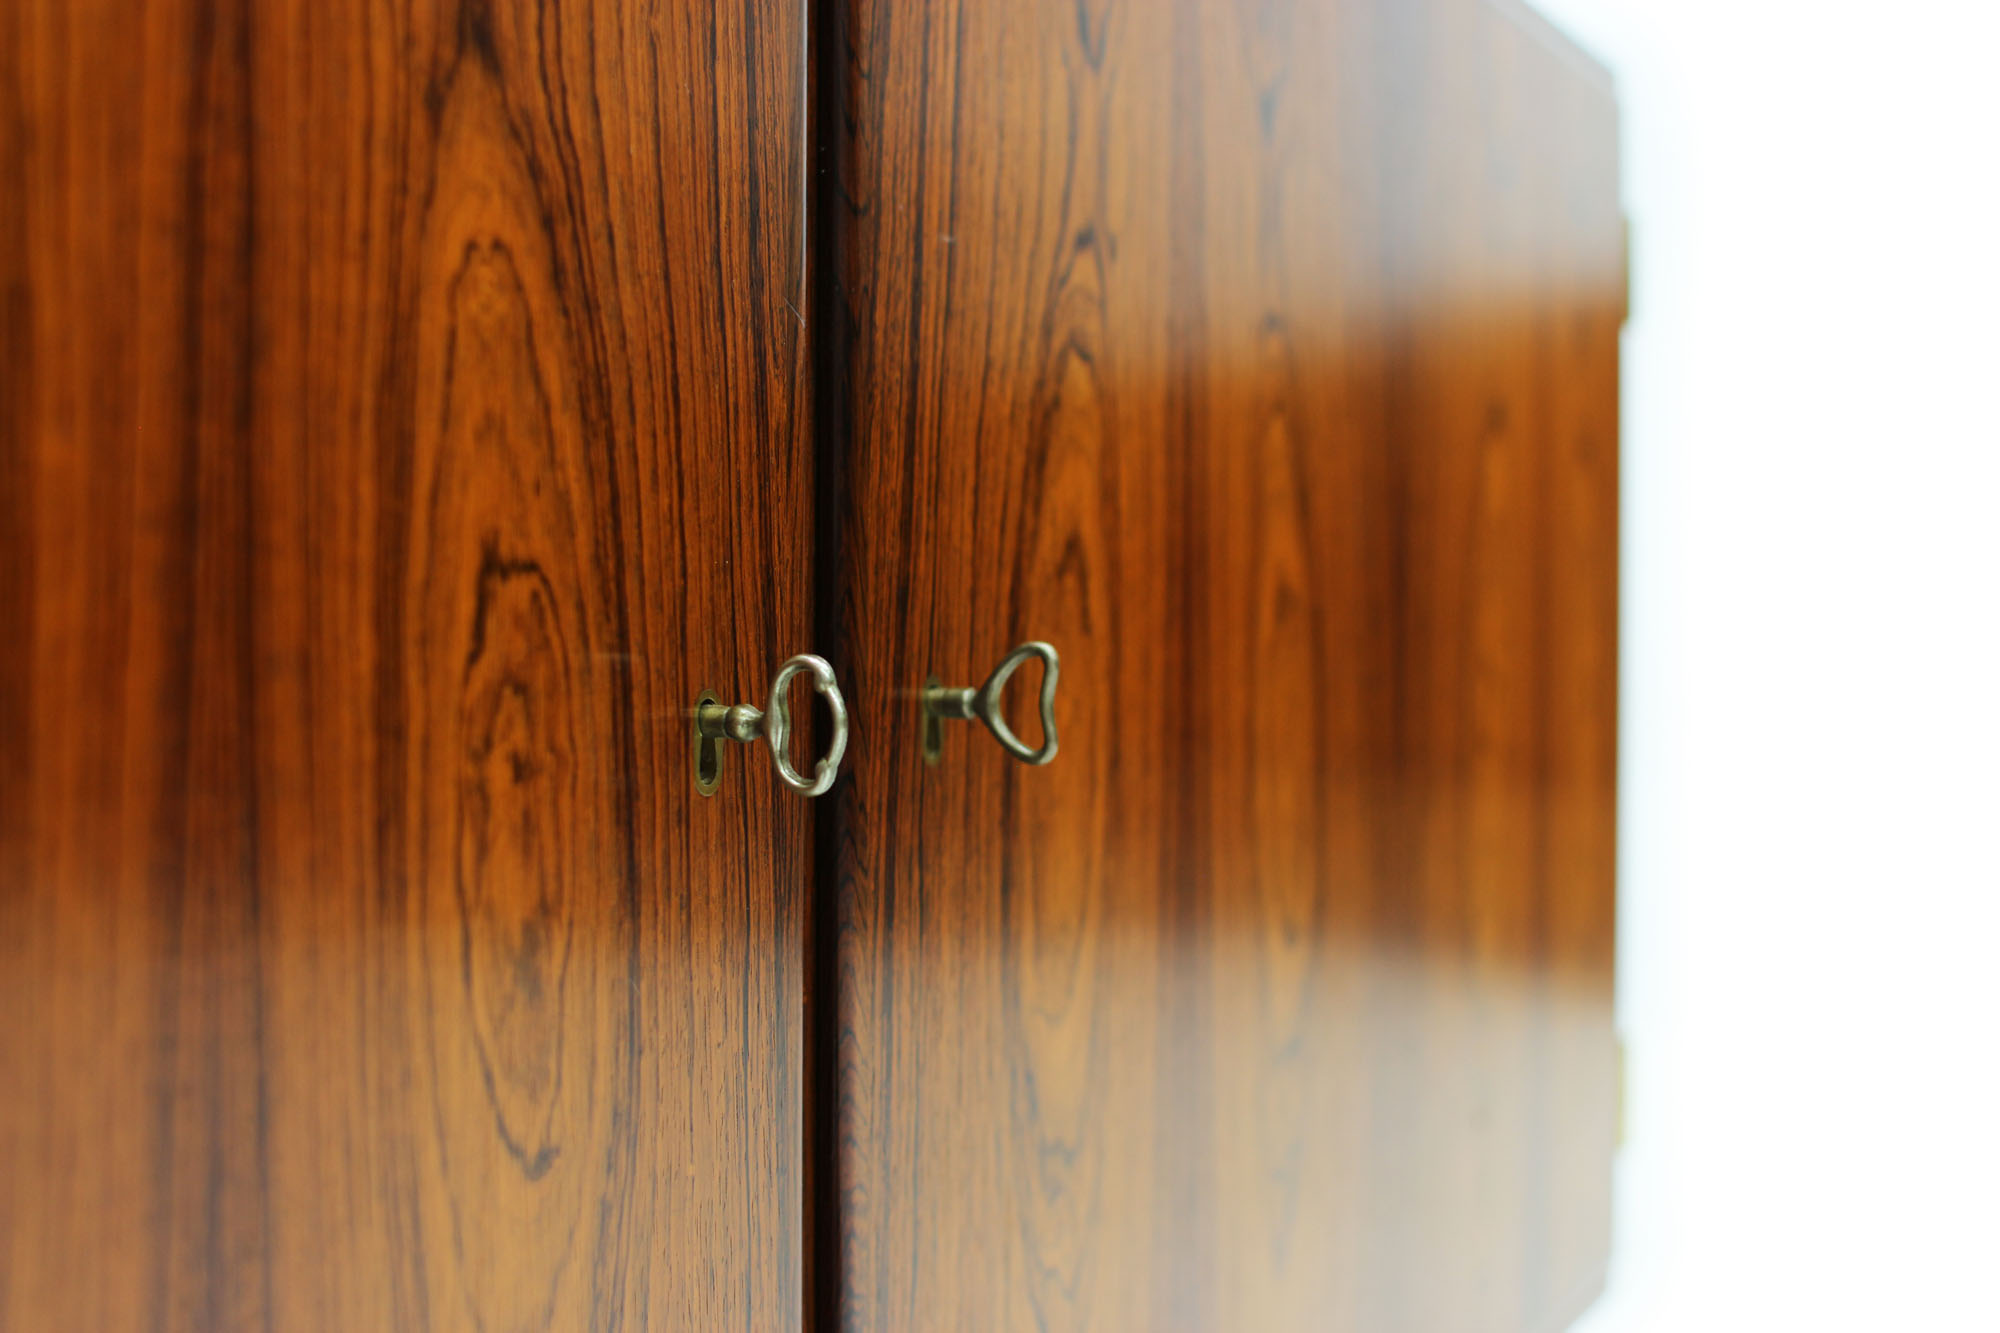 Danish Poul Hundevad cabinet with pull out drawer original keys in Rosewood (4).jpg